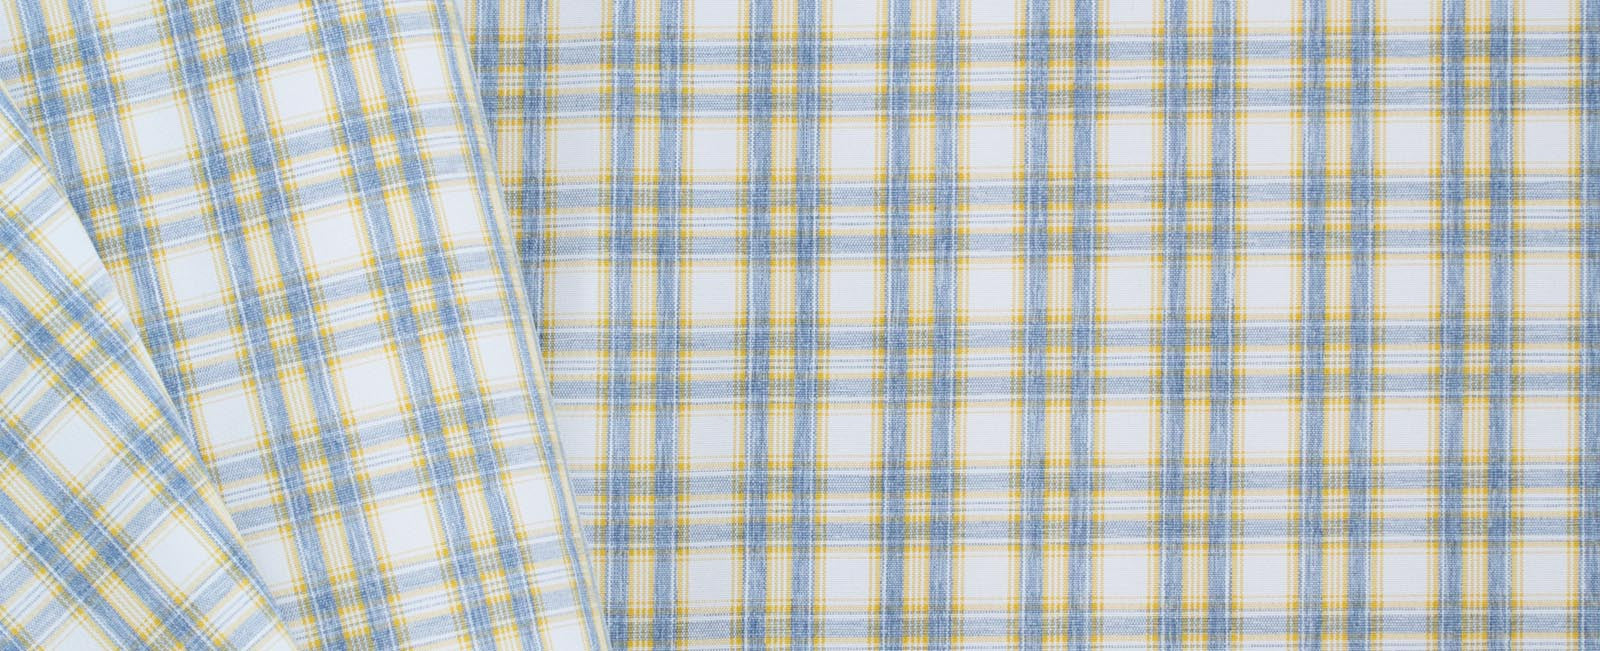 Lightweight fabric in Lemonade Stand Plaid